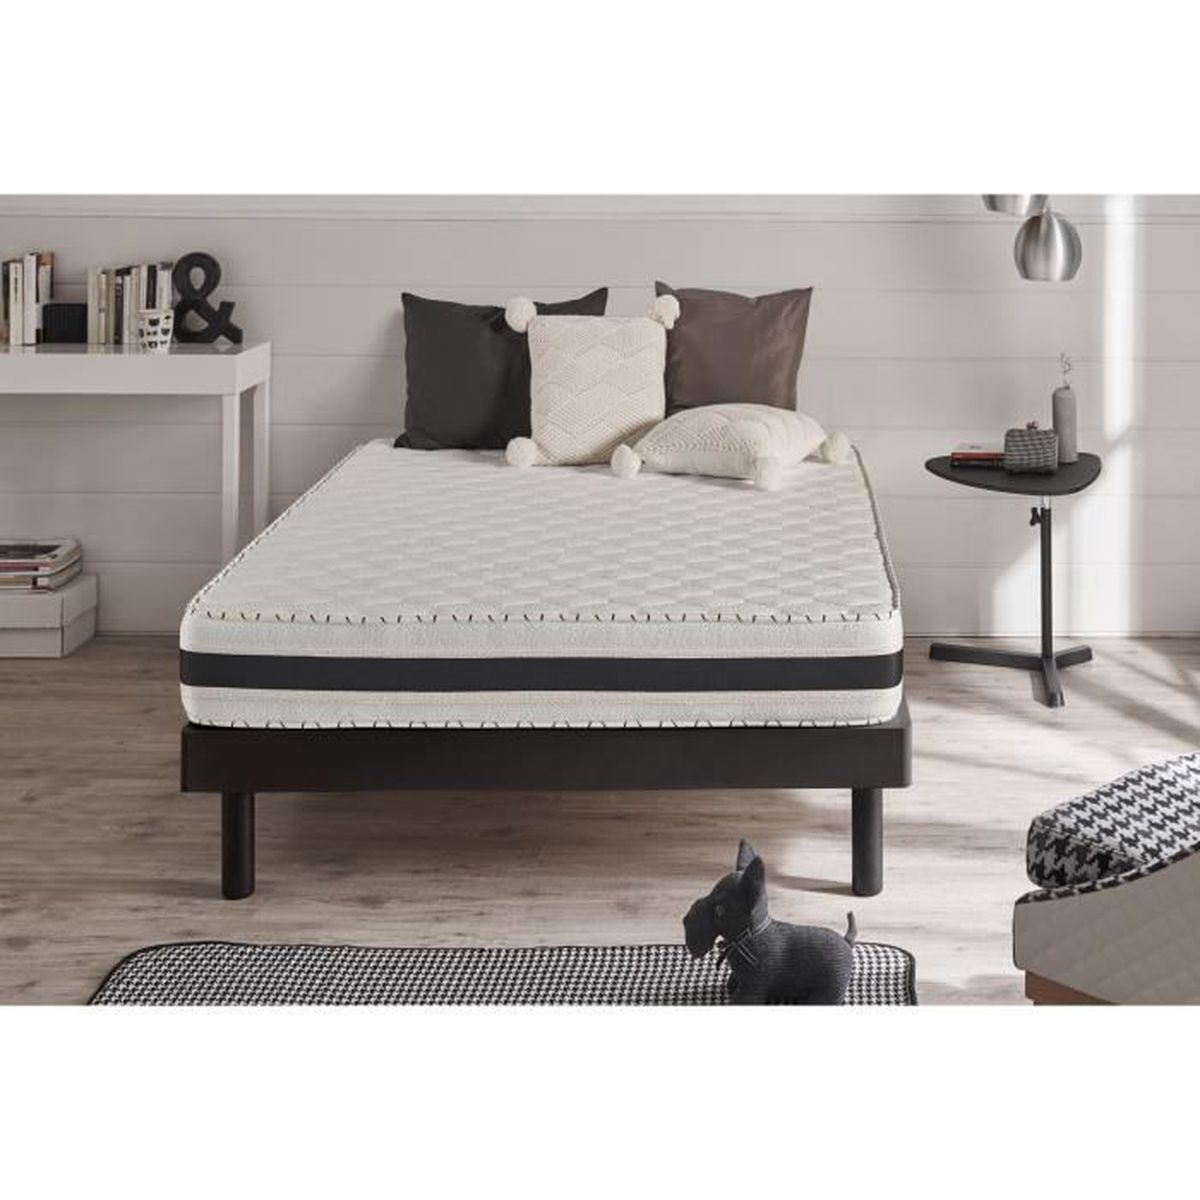 matelas aloe intense 90x190cm blue latex mousse m moire viscotex 22 cm achat vente. Black Bedroom Furniture Sets. Home Design Ideas